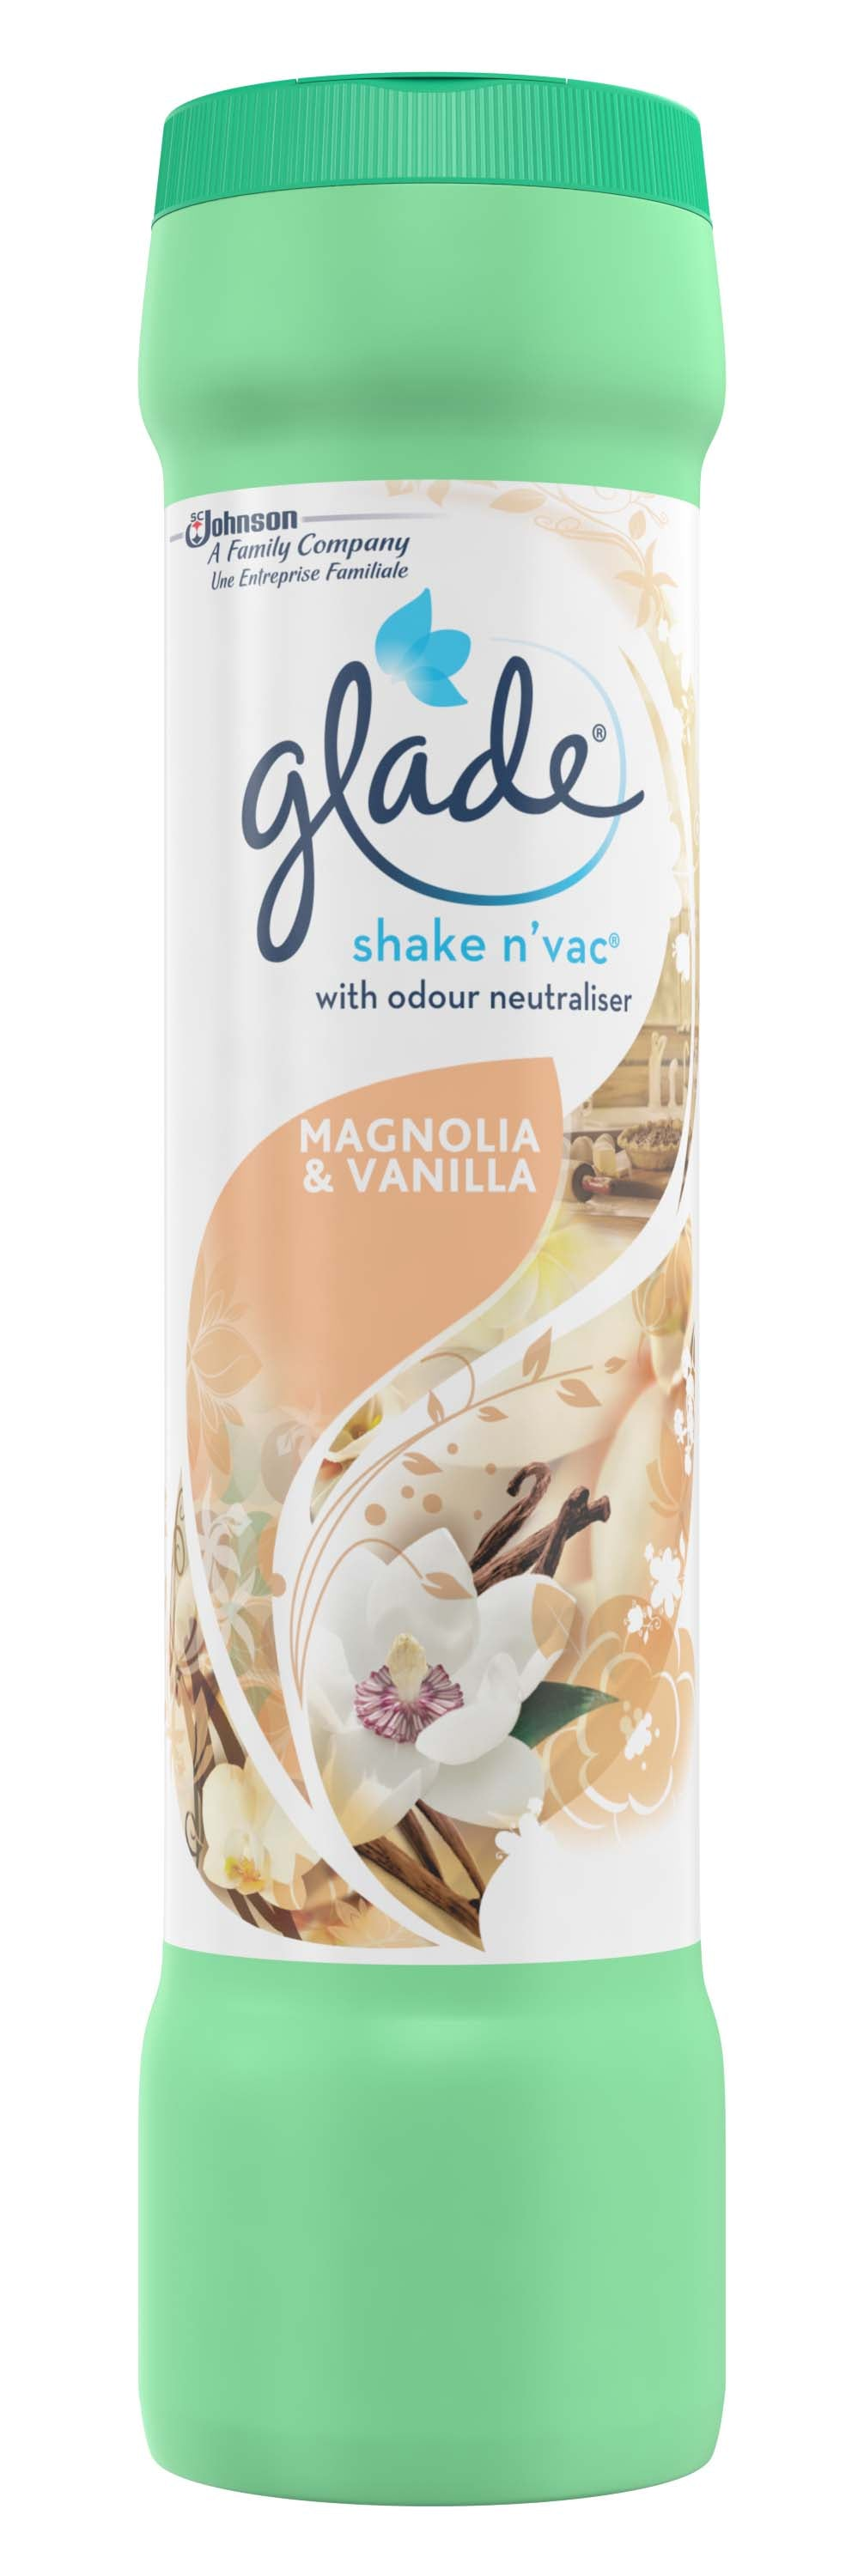 Glade - Shake and Vac Vanilla & Magnolia 500g,Floor Cleaner,Glade